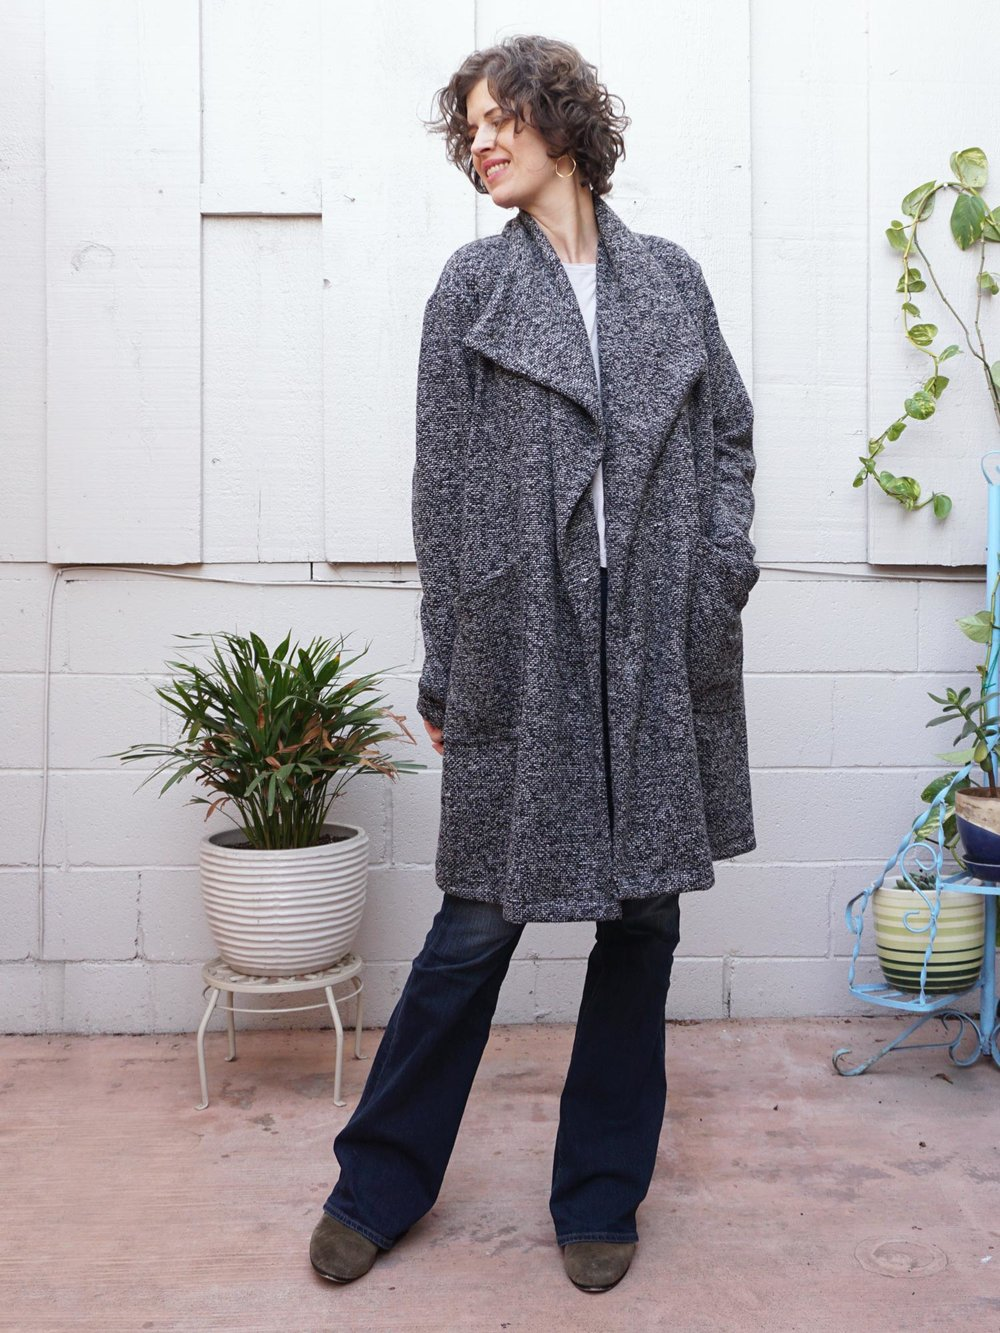 DIY Boucle Coatigan – Review of the Jill Coat by Seamwork | Sew DIY